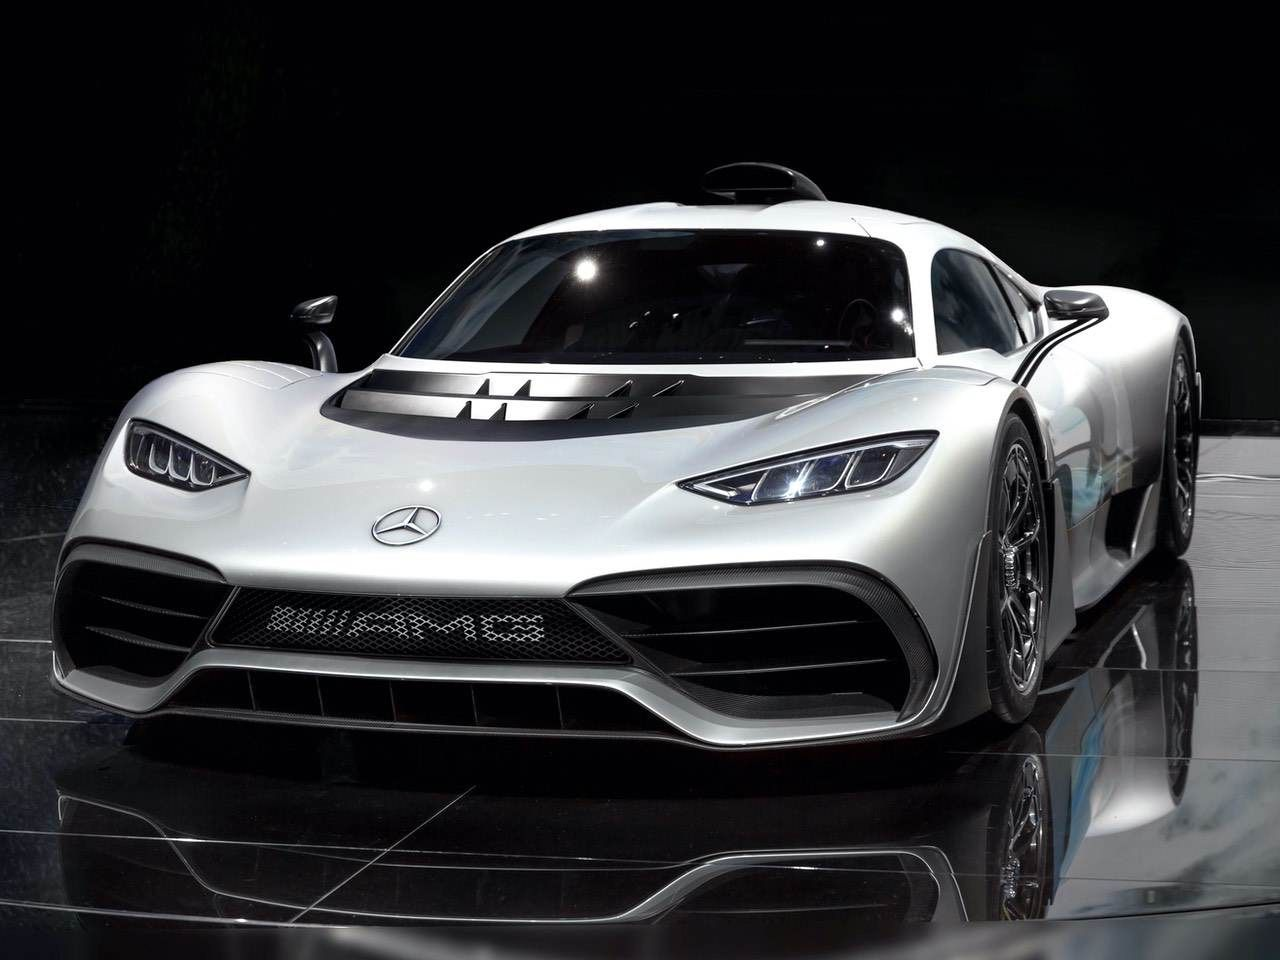 Mercedes AMG Project One - FOR SALE  #supercars #speed #projectone #mercedesclub #mercedeslife #amg #mercedesfans #amgaddict #mercedes #mercedesamgprojectone #monaco #luxurymercedes #tradinglux